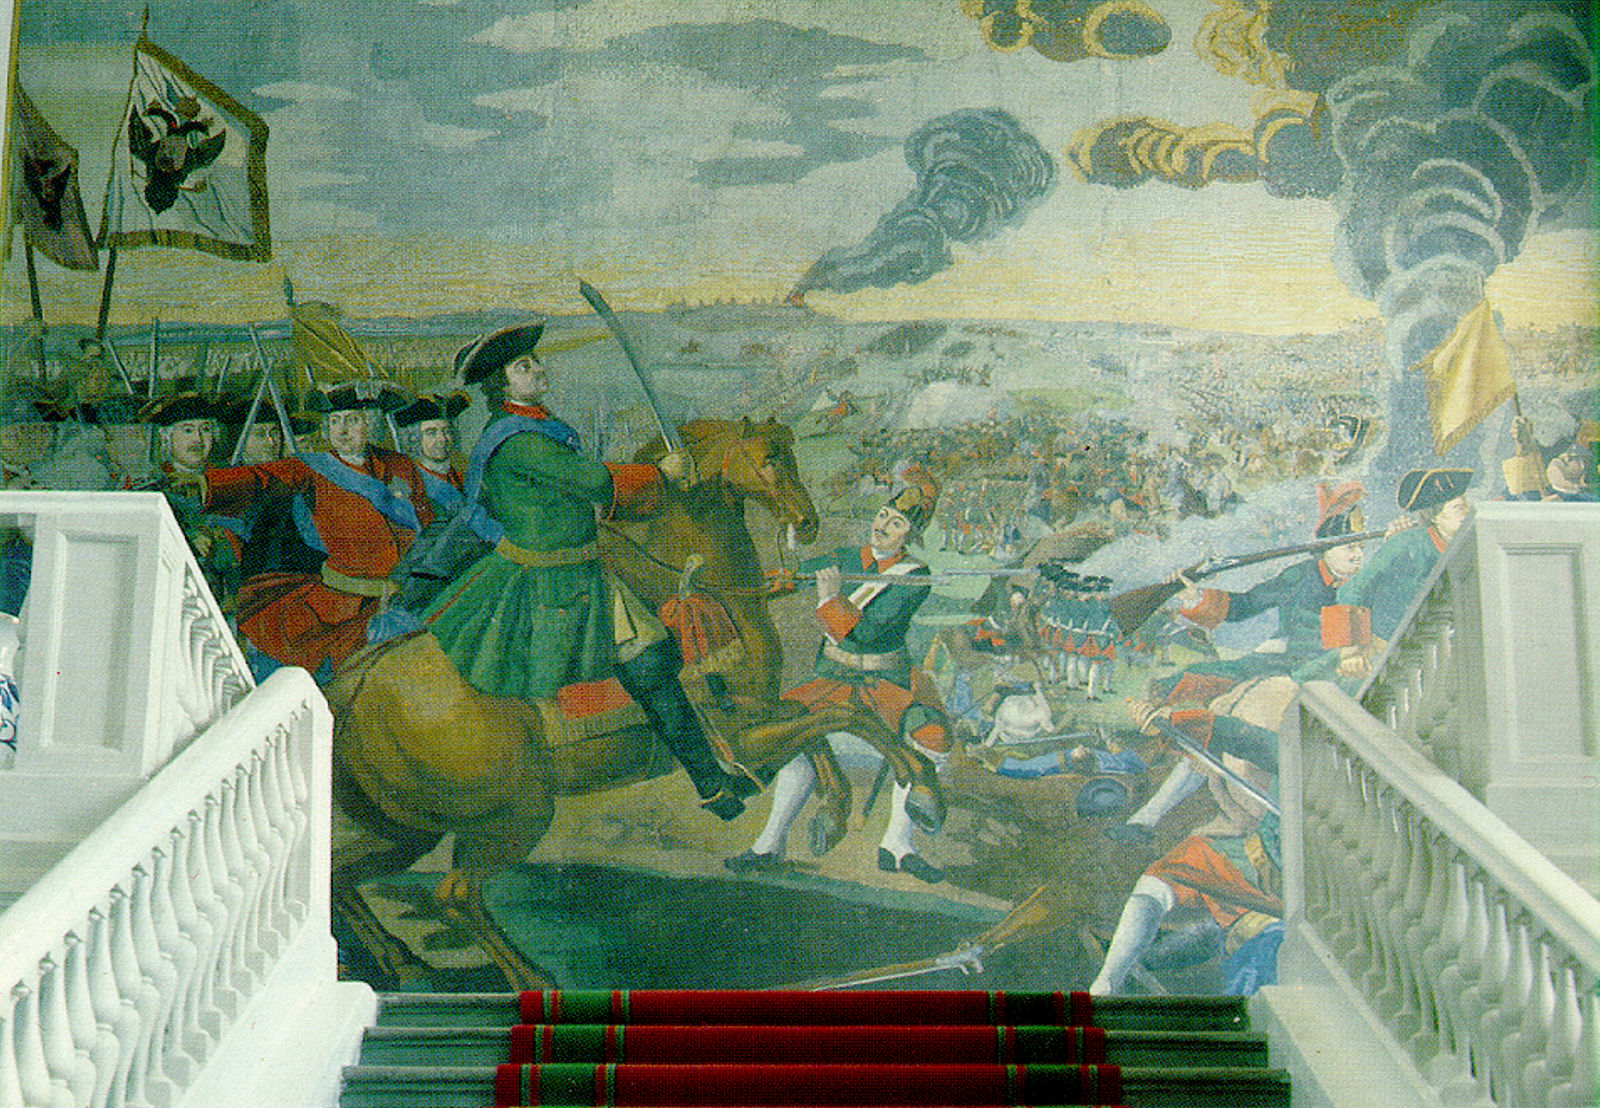 Battle of Poltava (mosaic), Mikhail Lomonosov, 1762–1764